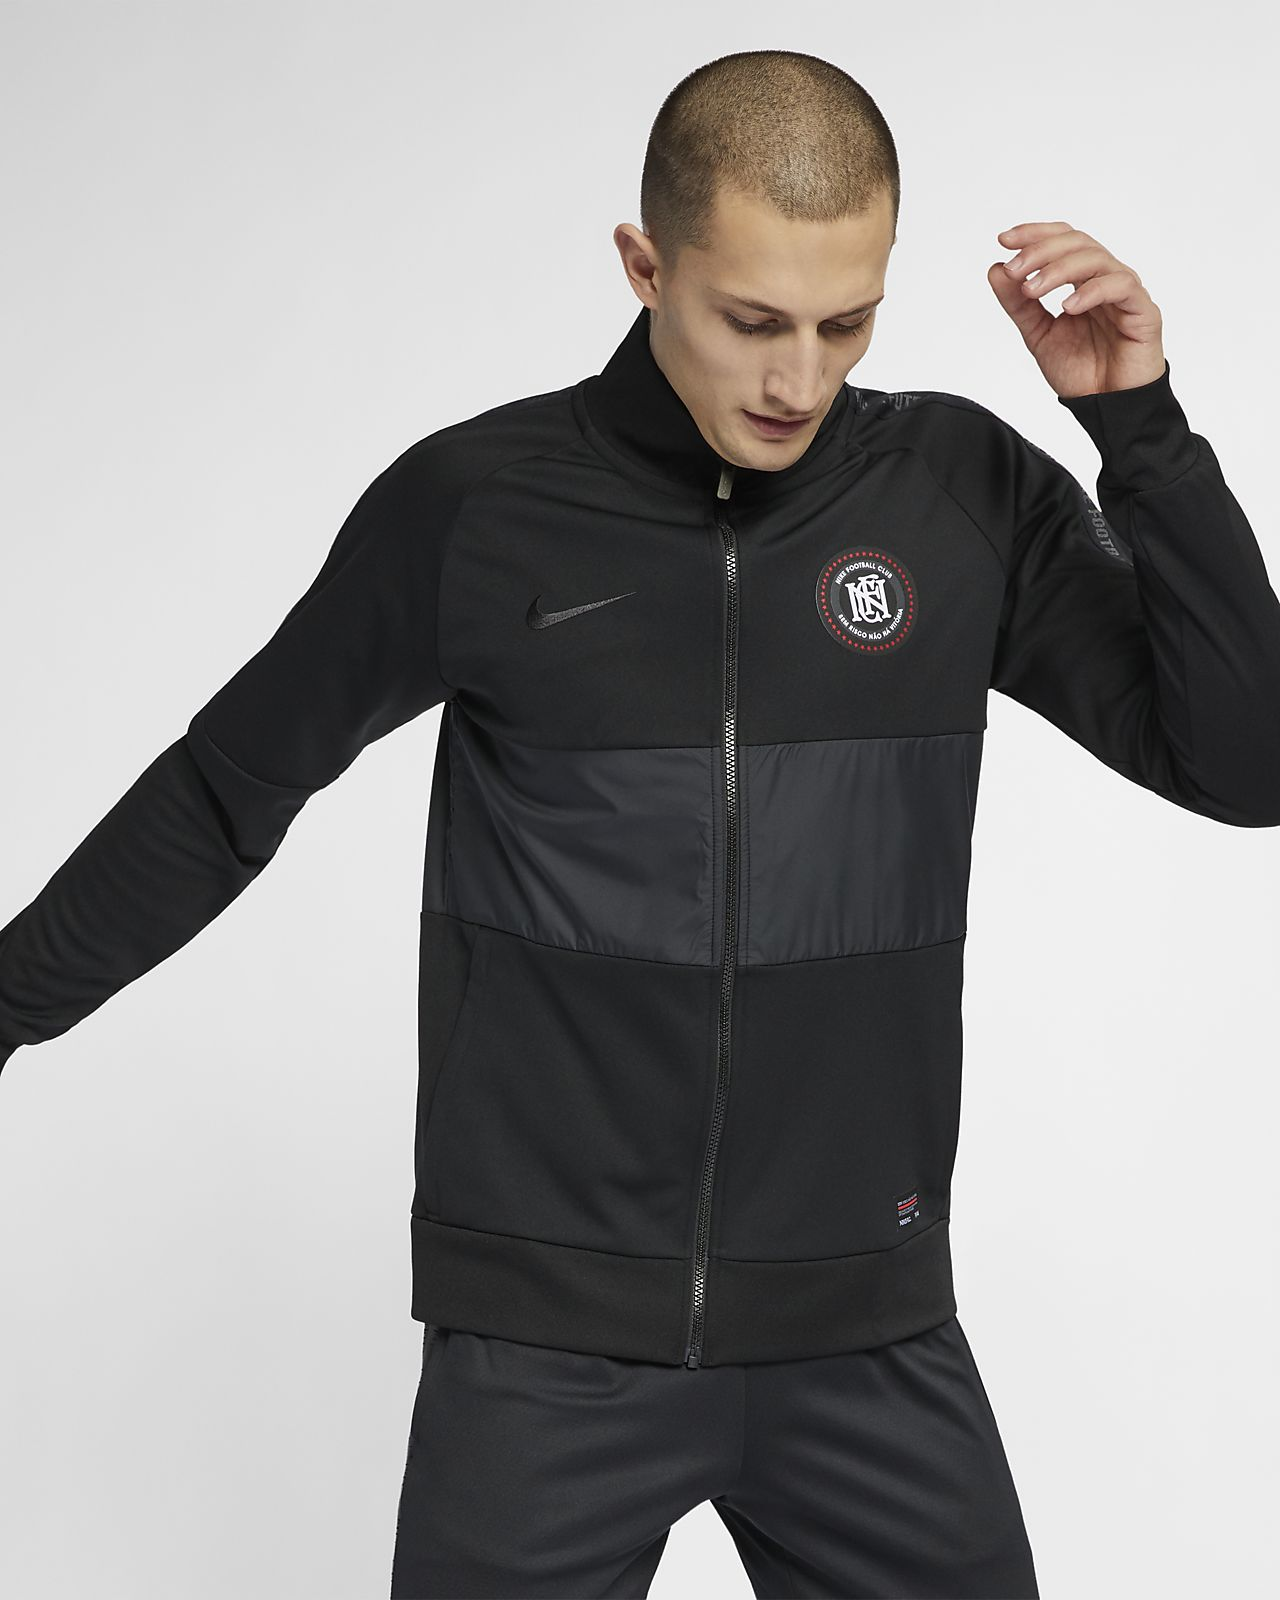 best selling vast selection outlet on sale Veste de survêtement de football Nike F.C. pour Homme